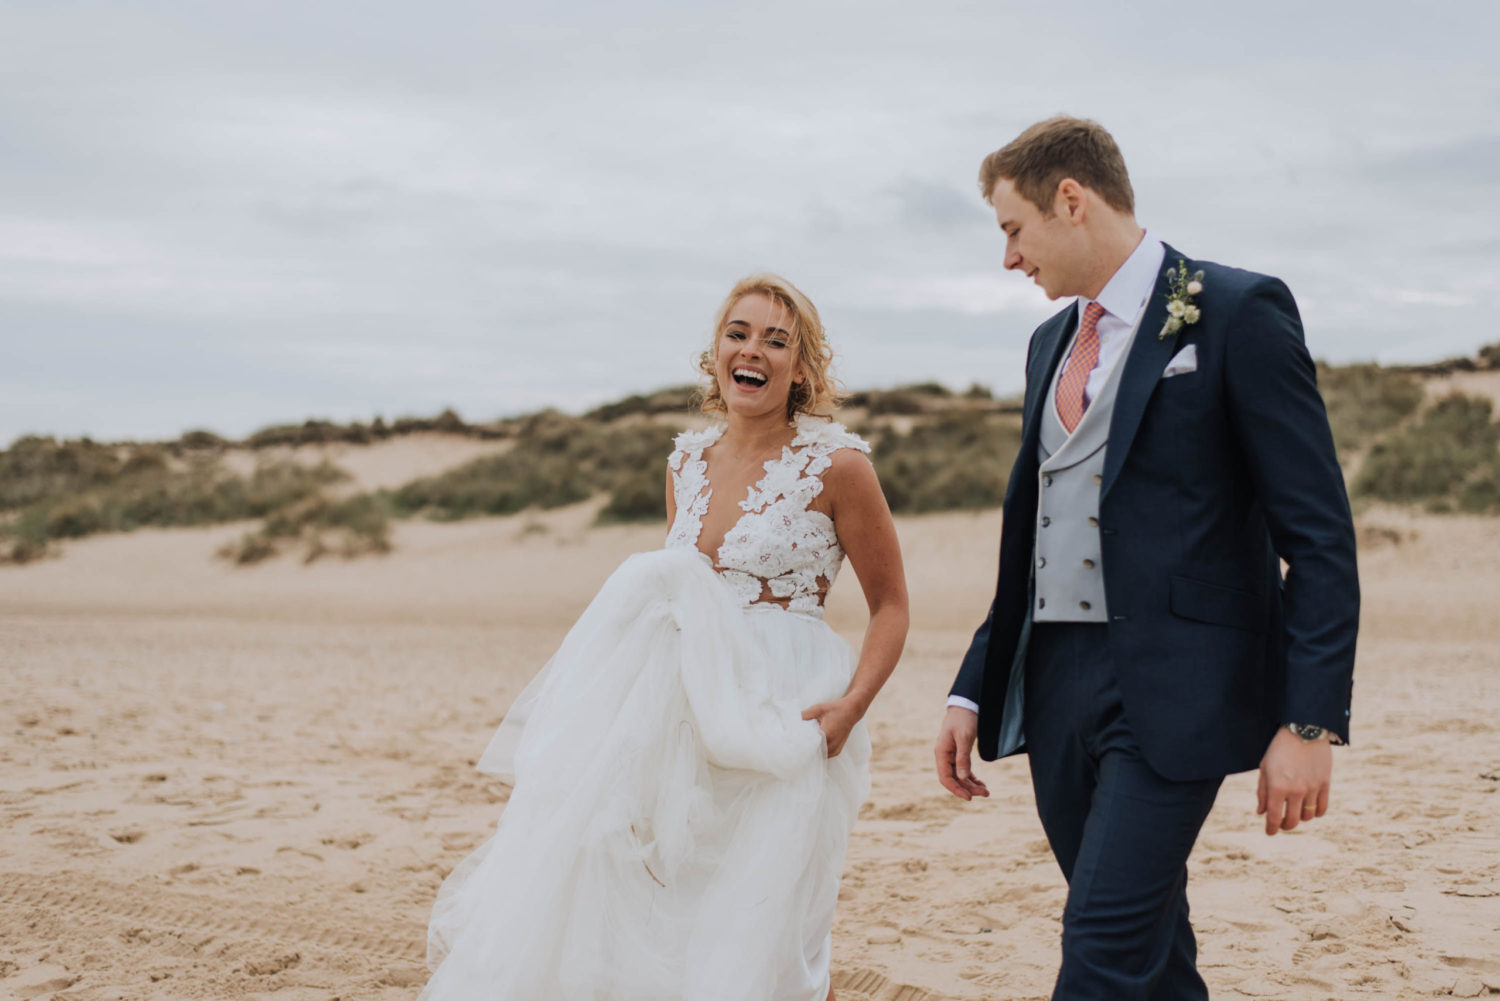 Winterton-on-Sea Wedding